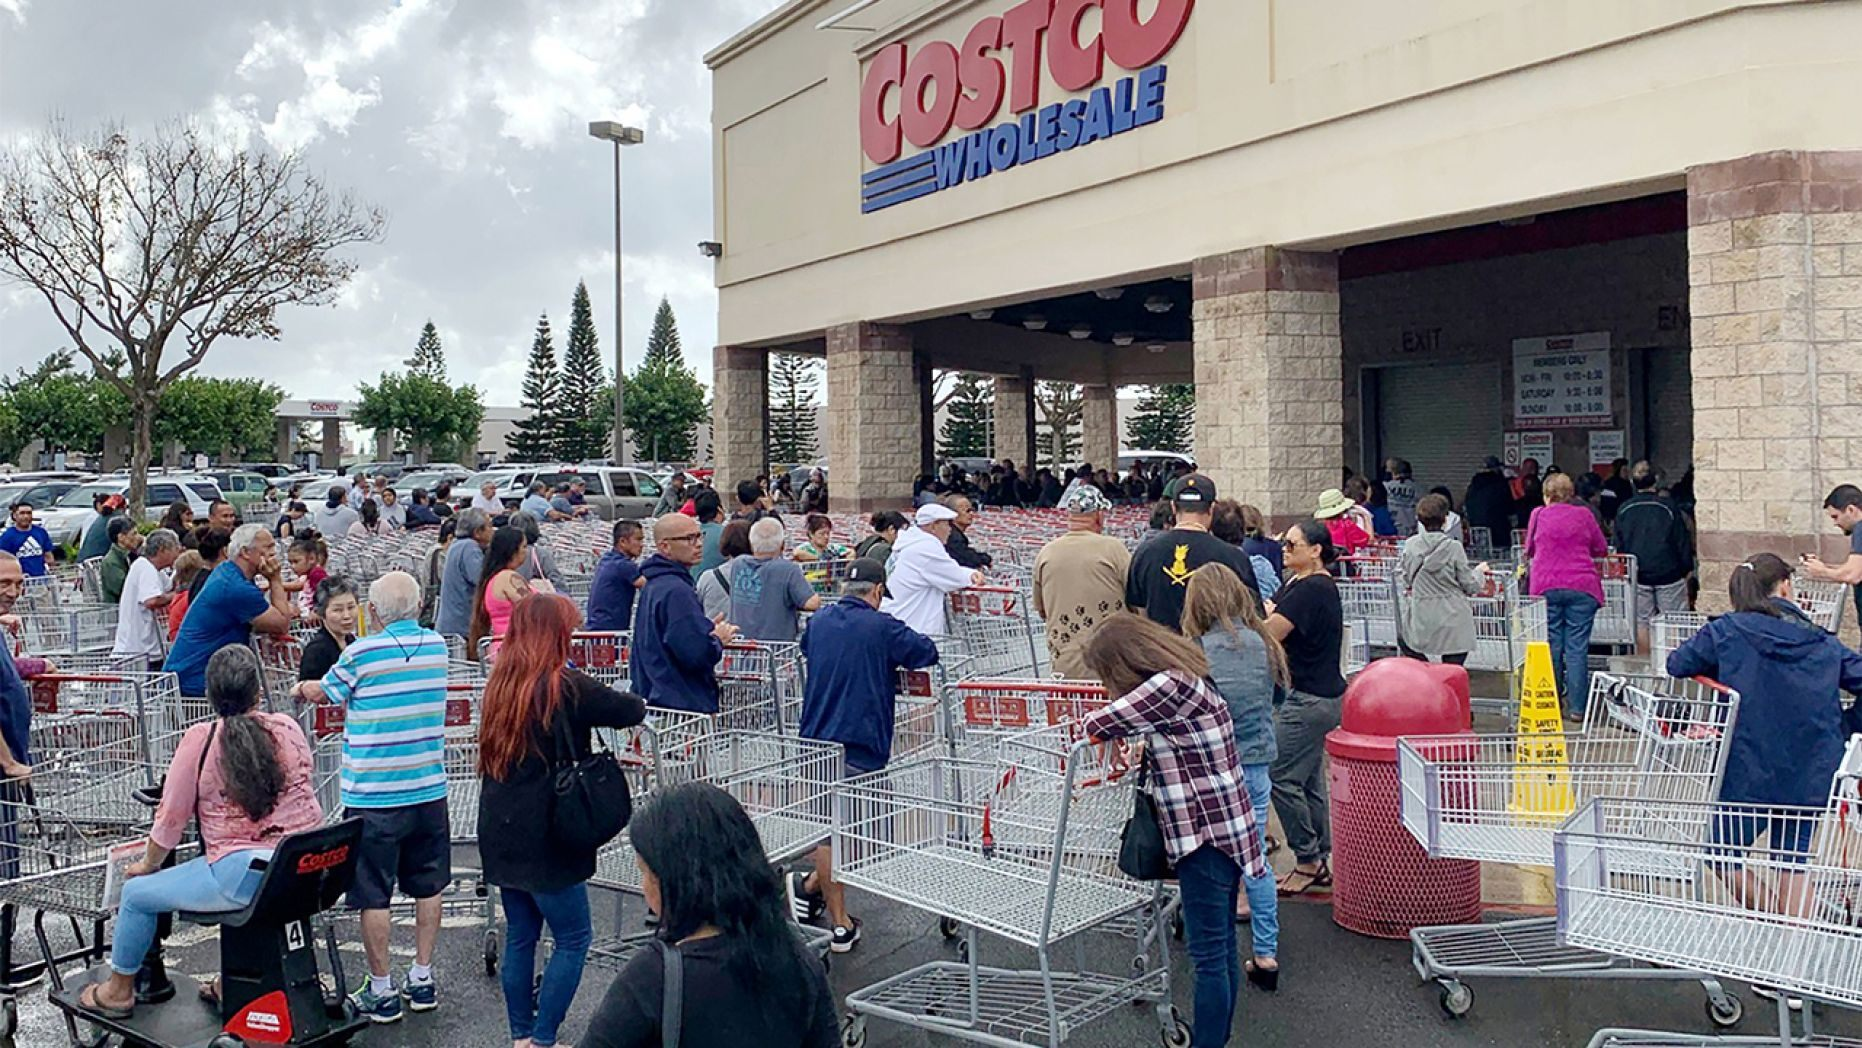 Around 11:45 a.m. at a Costco in Brooklyn, two customers got into a heated argument while standing in line.